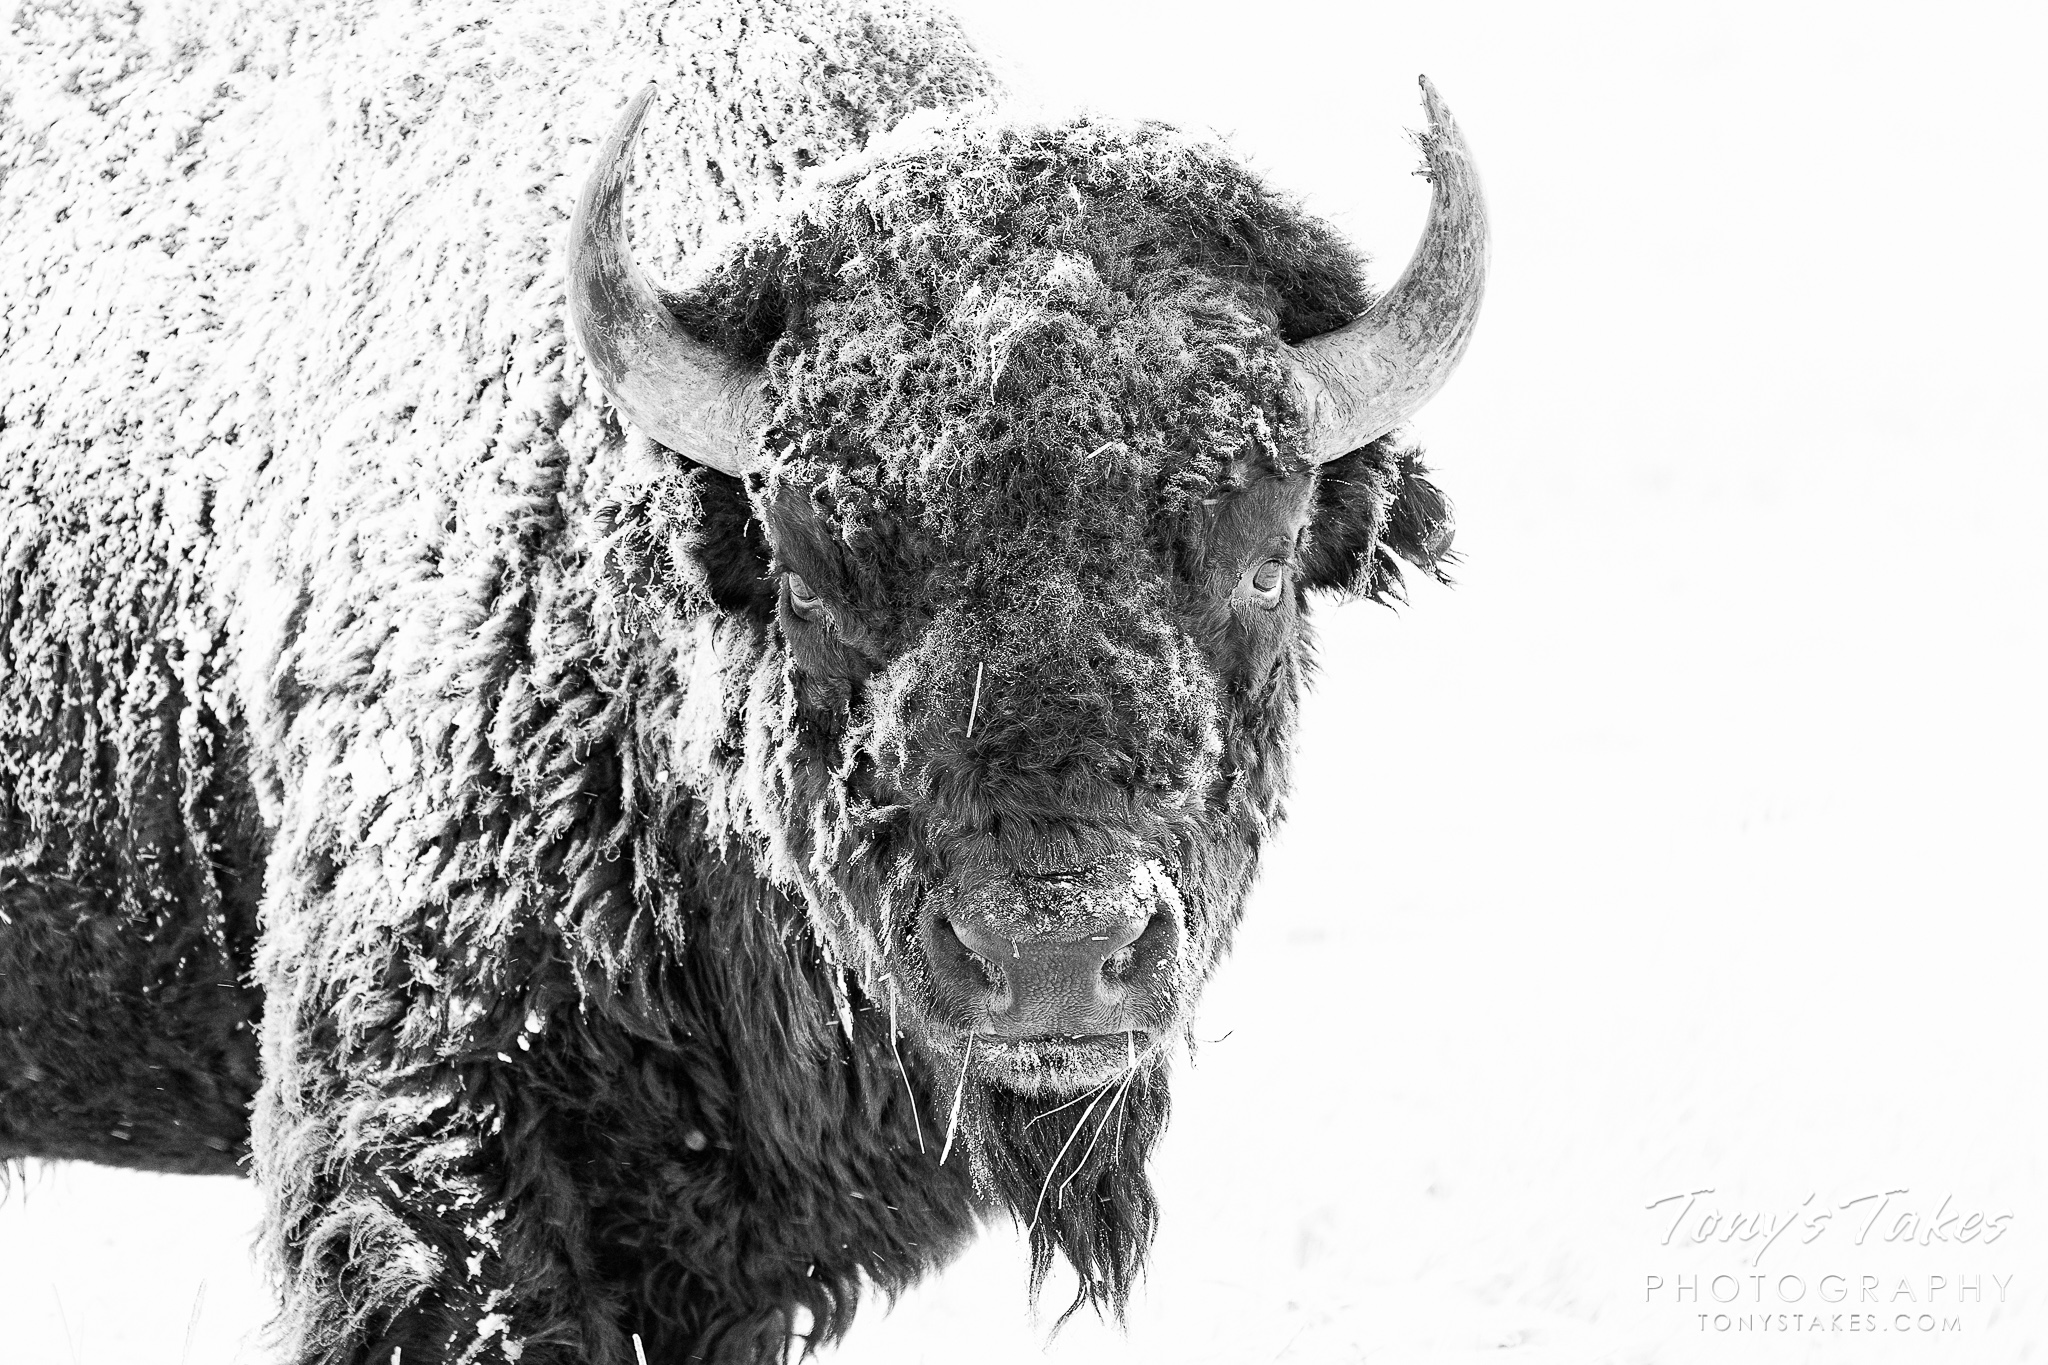 American bison bull in stark black and white